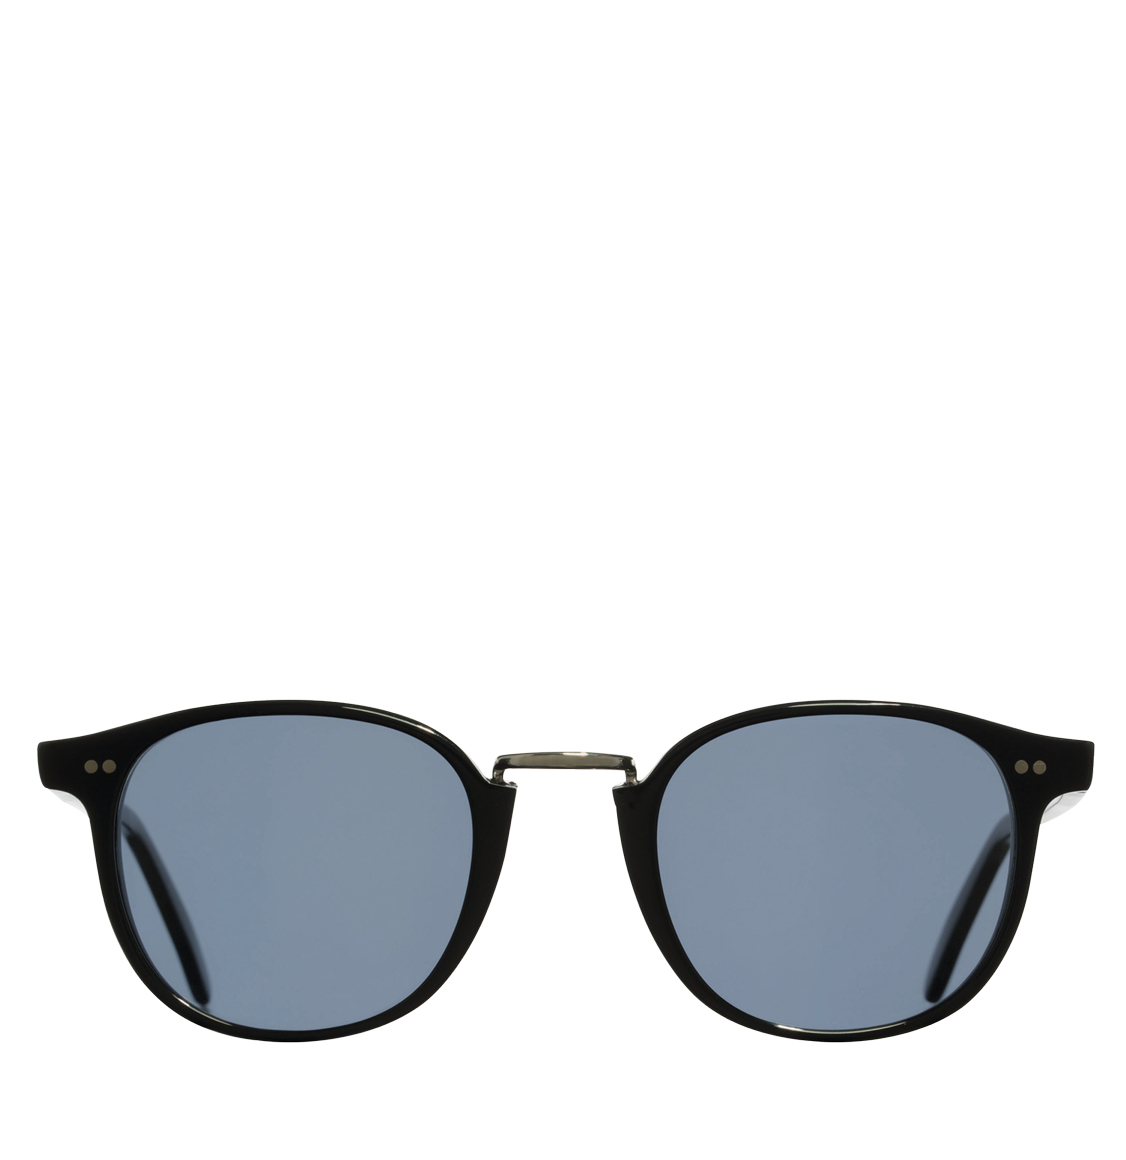 Cutler and Gross 1007B Round-Frame Black Acetate 50 Γυαλιά Ηλίου